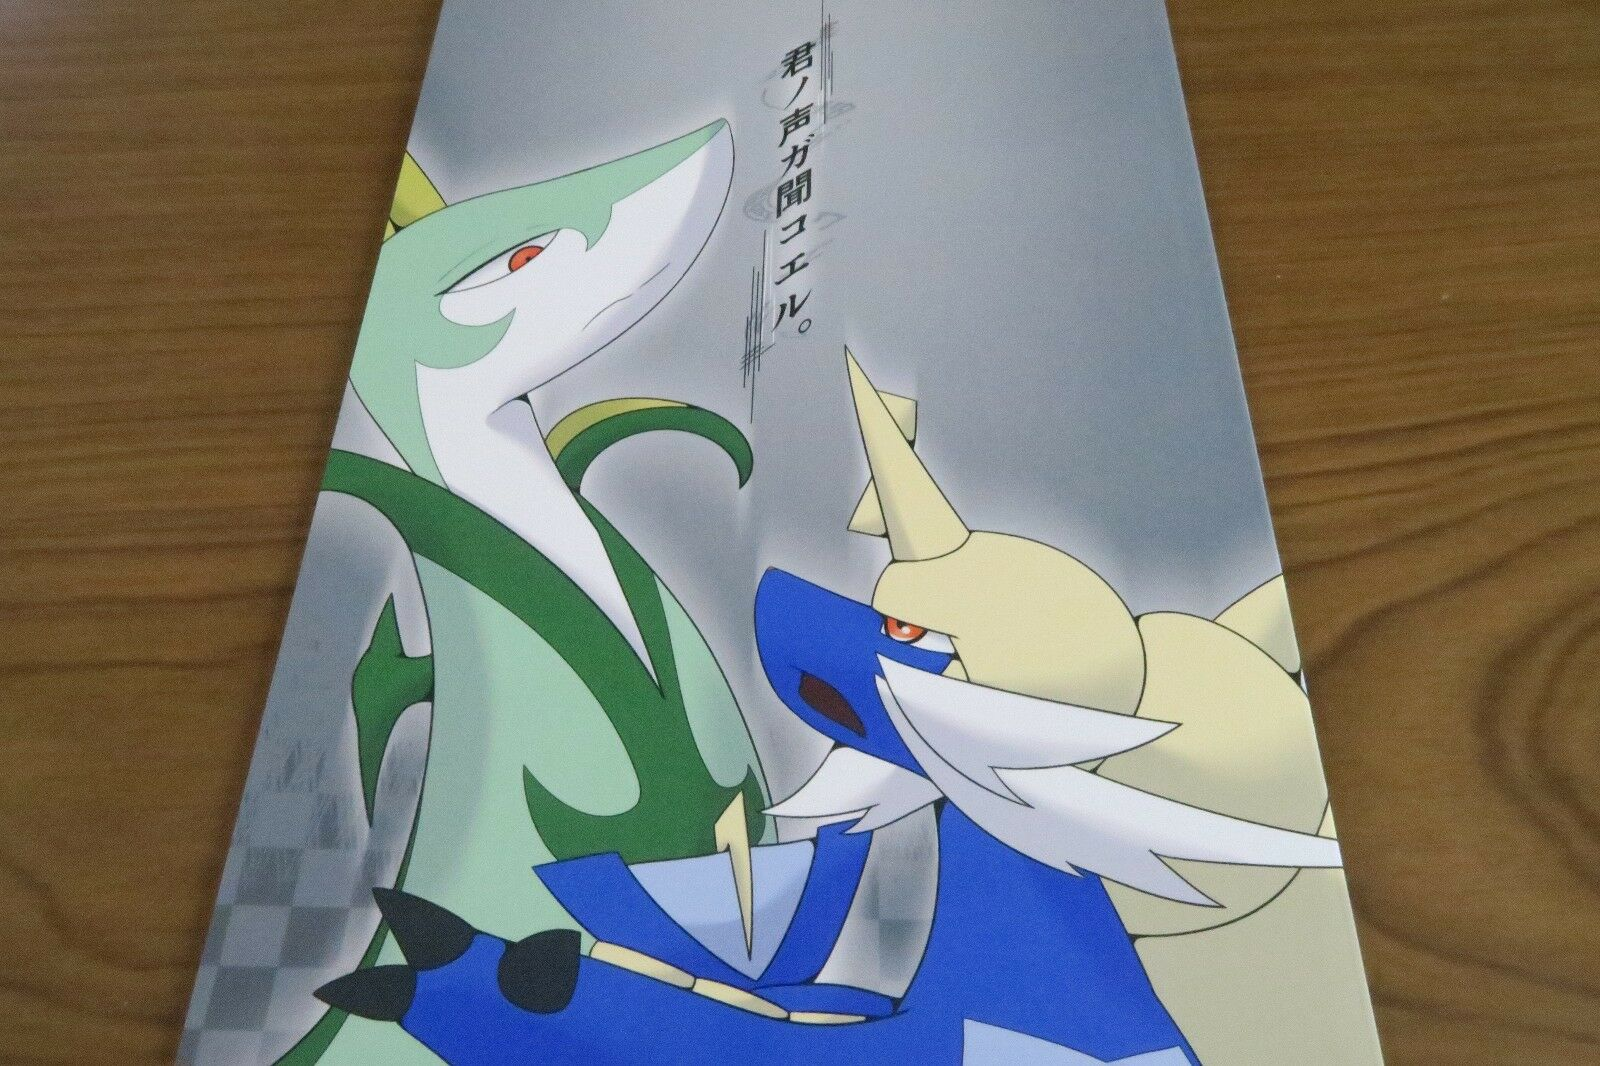 Pokemon Doujinshi Serperior Snivy Etc. Vore (A5 22pages) Kimi Koe Furry Kemono